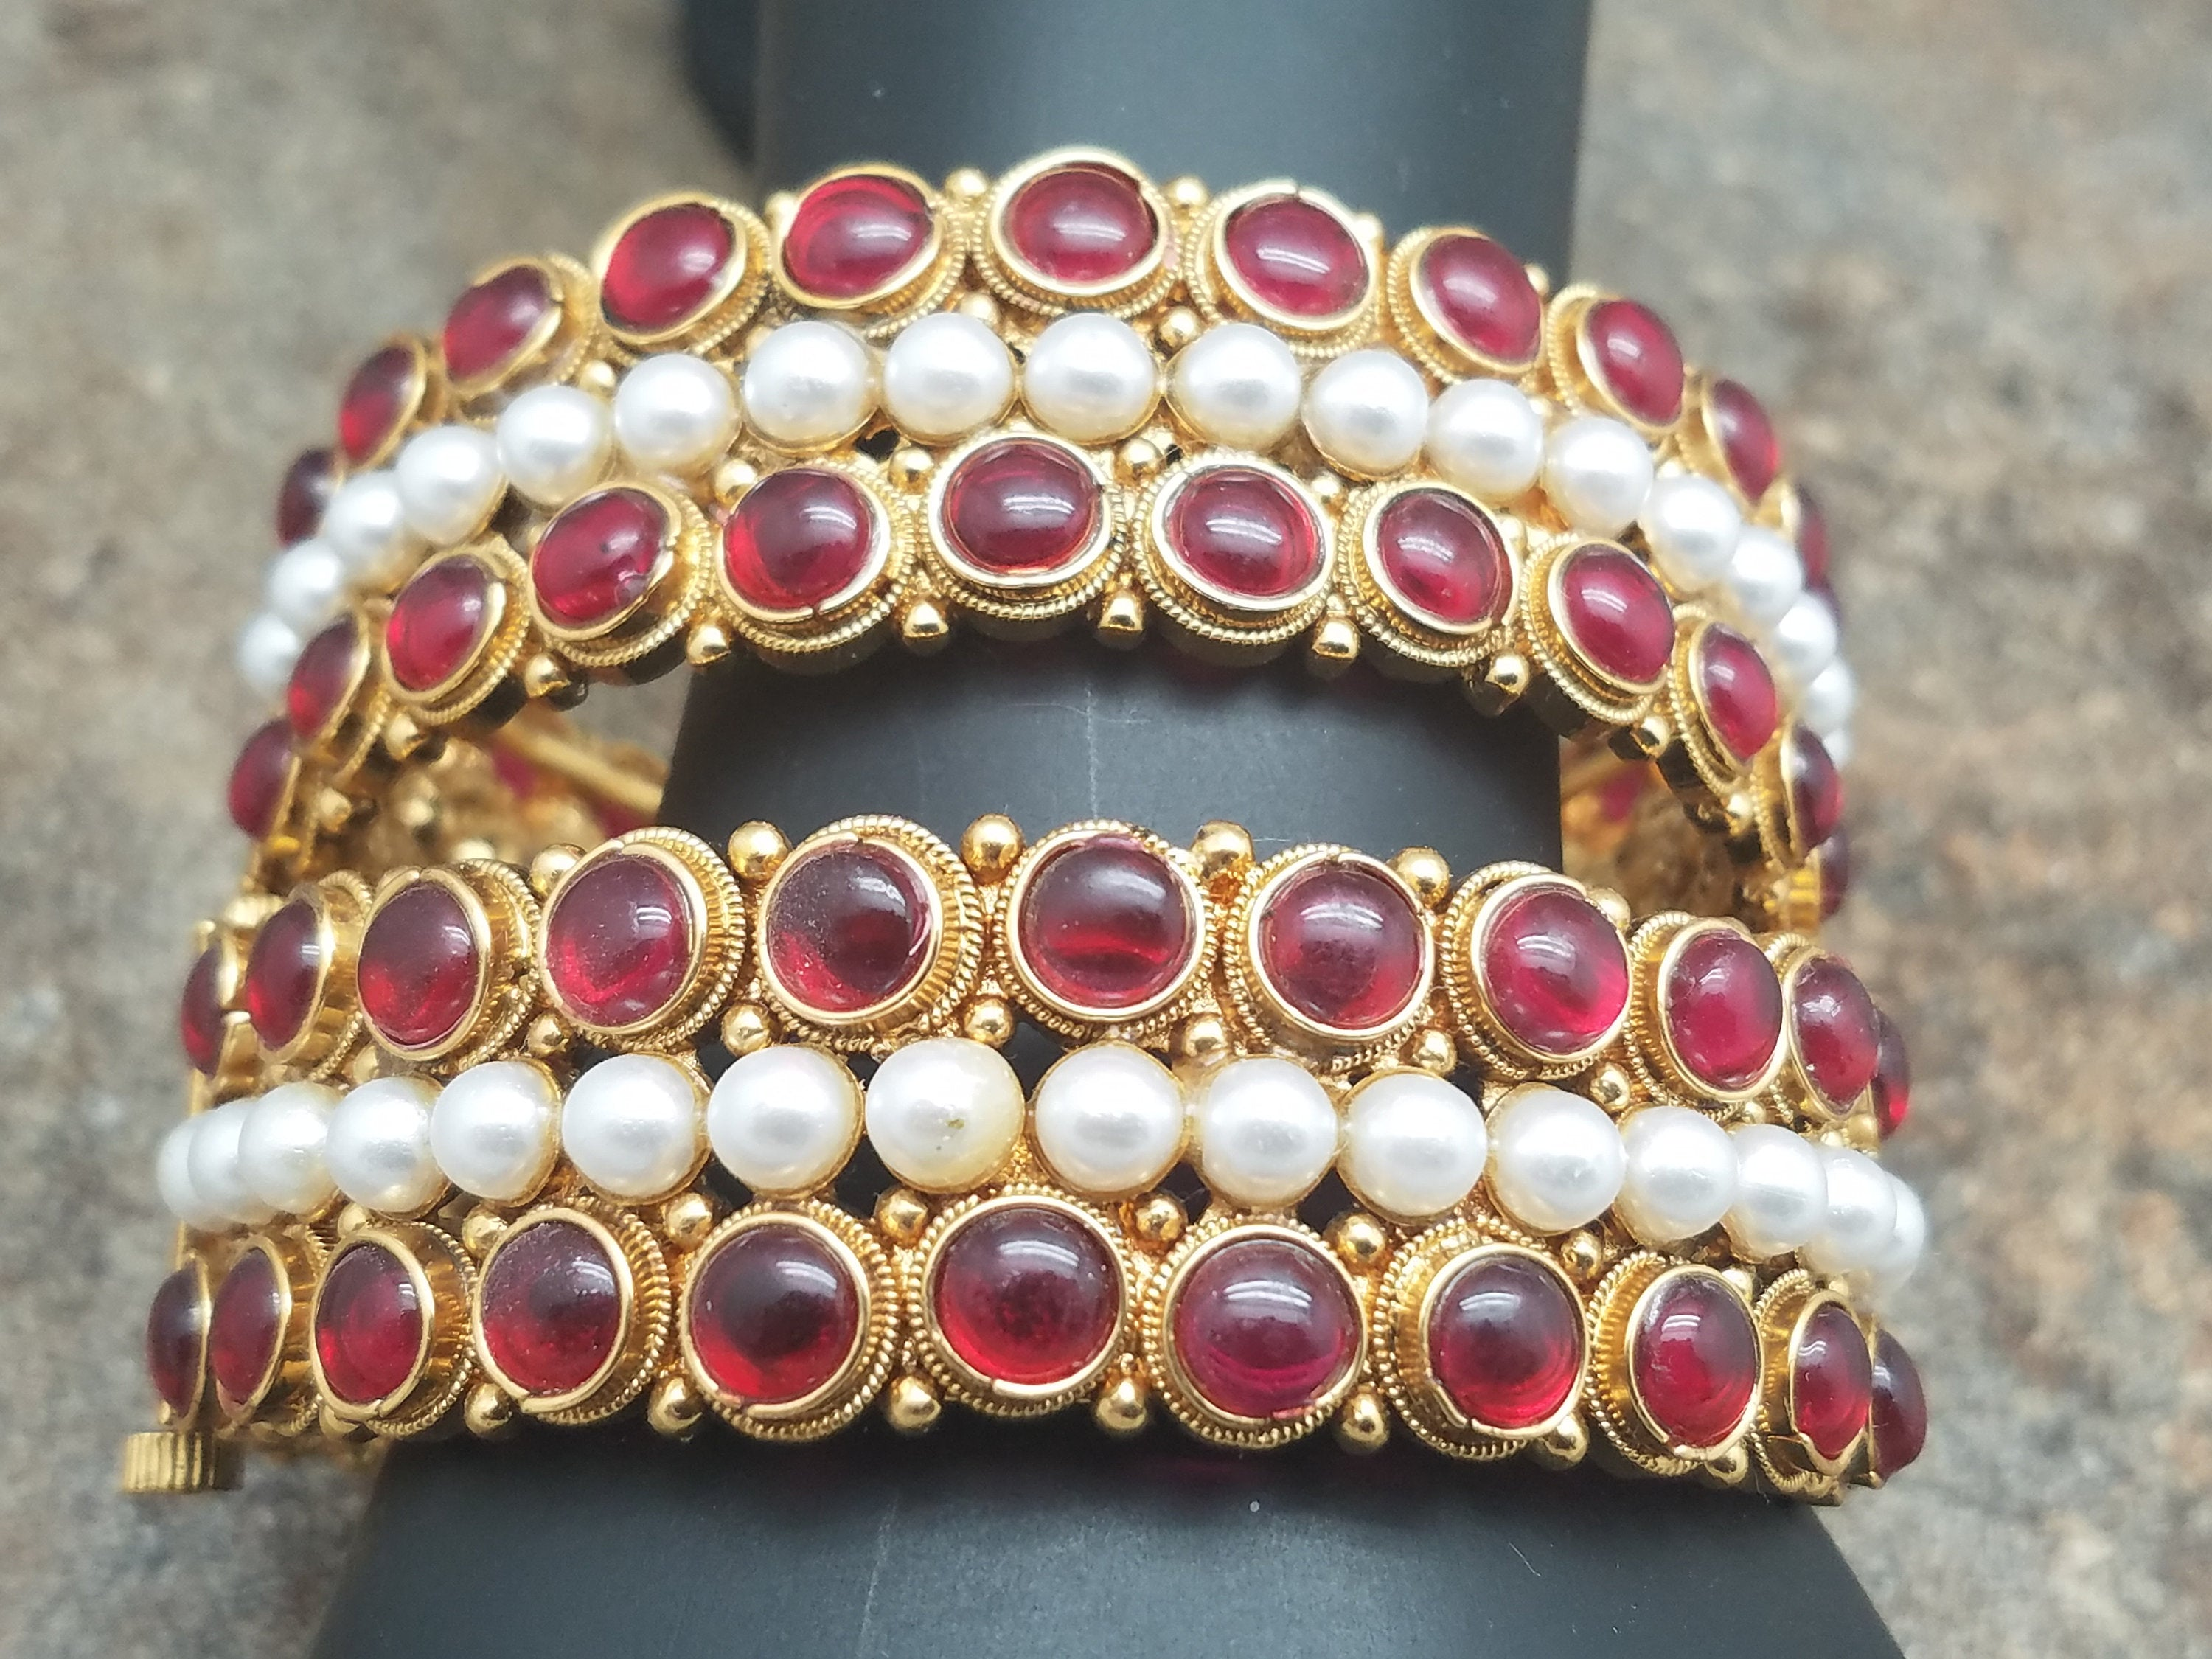 Pair of Bangles, White Pearl & Faux Ruby Gold Kada, Size 2-6 or 2-8